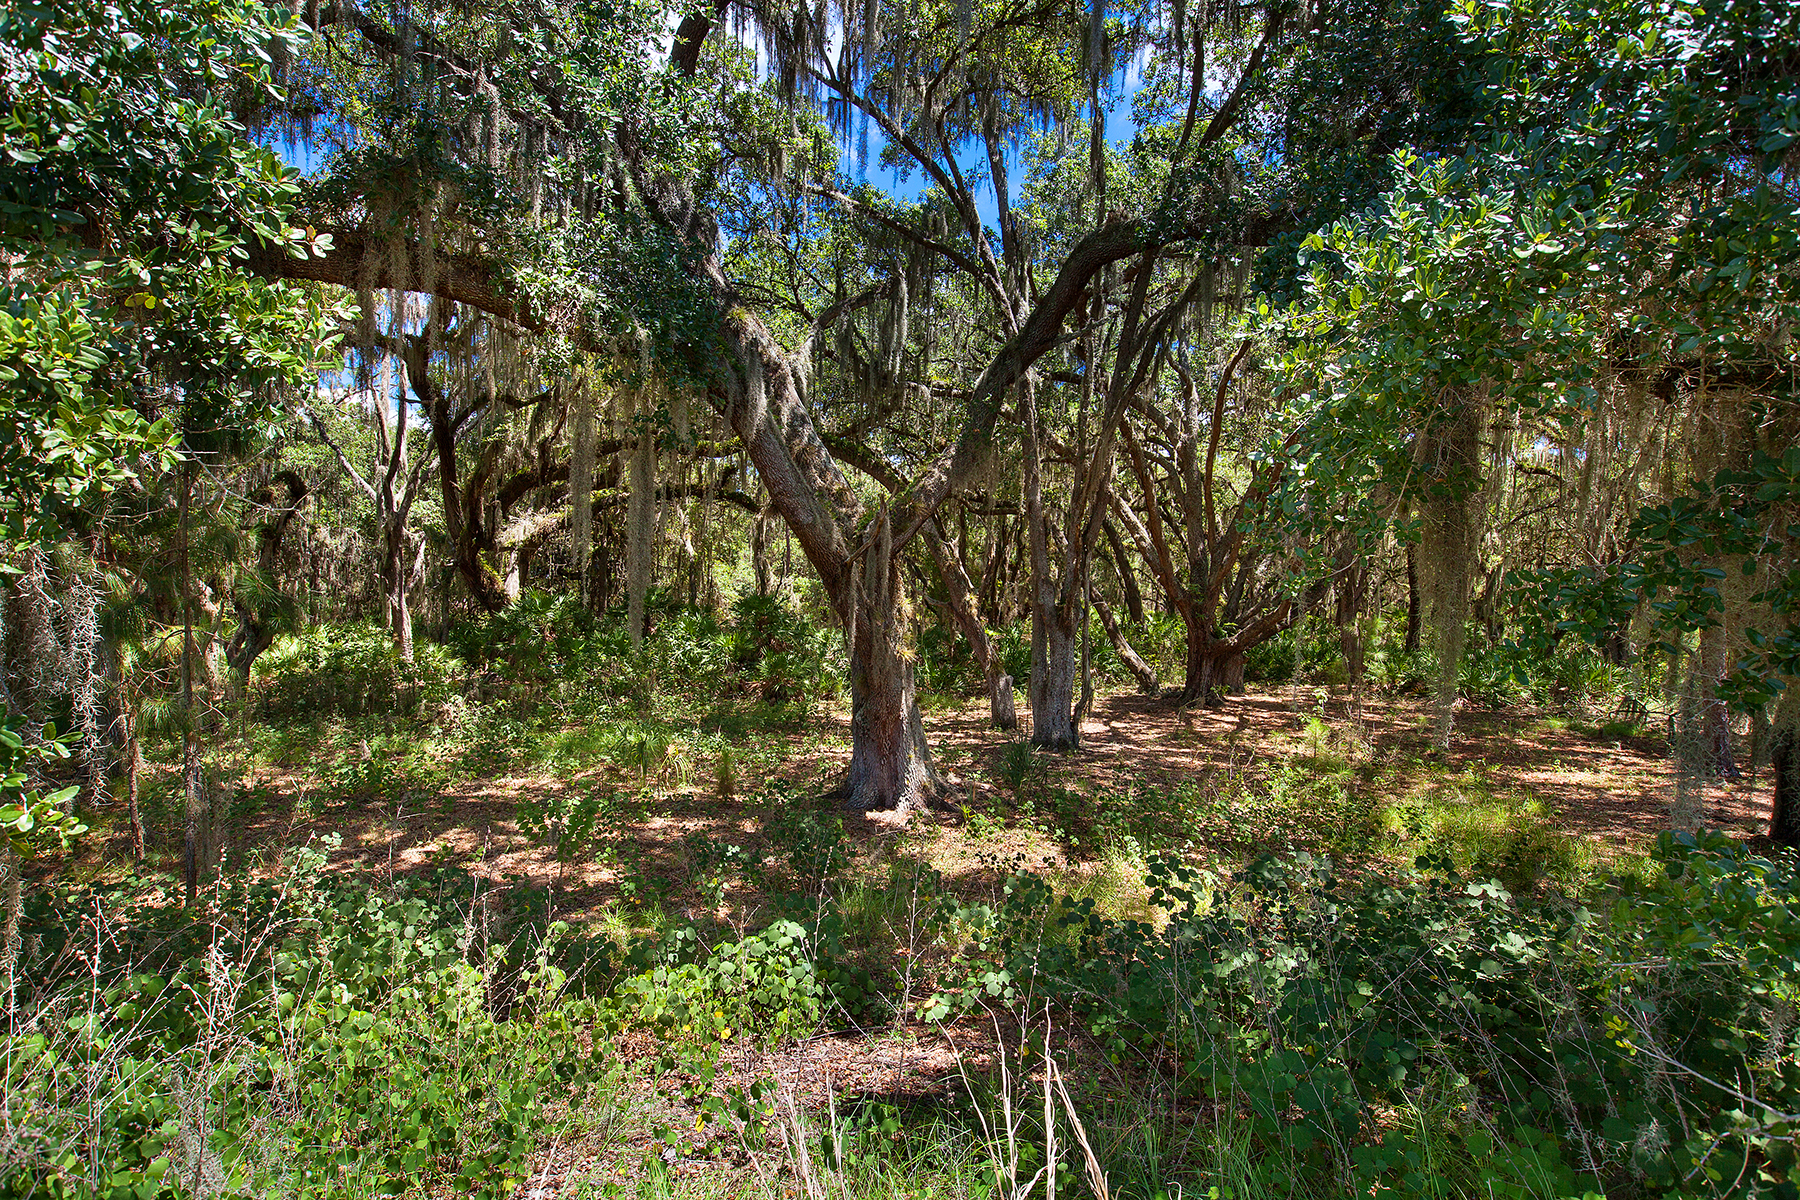 Land for Sale at CONCESSION 19431 Beacon Park Pl 9 Lakewood Ranch, Florida, 34202 United States